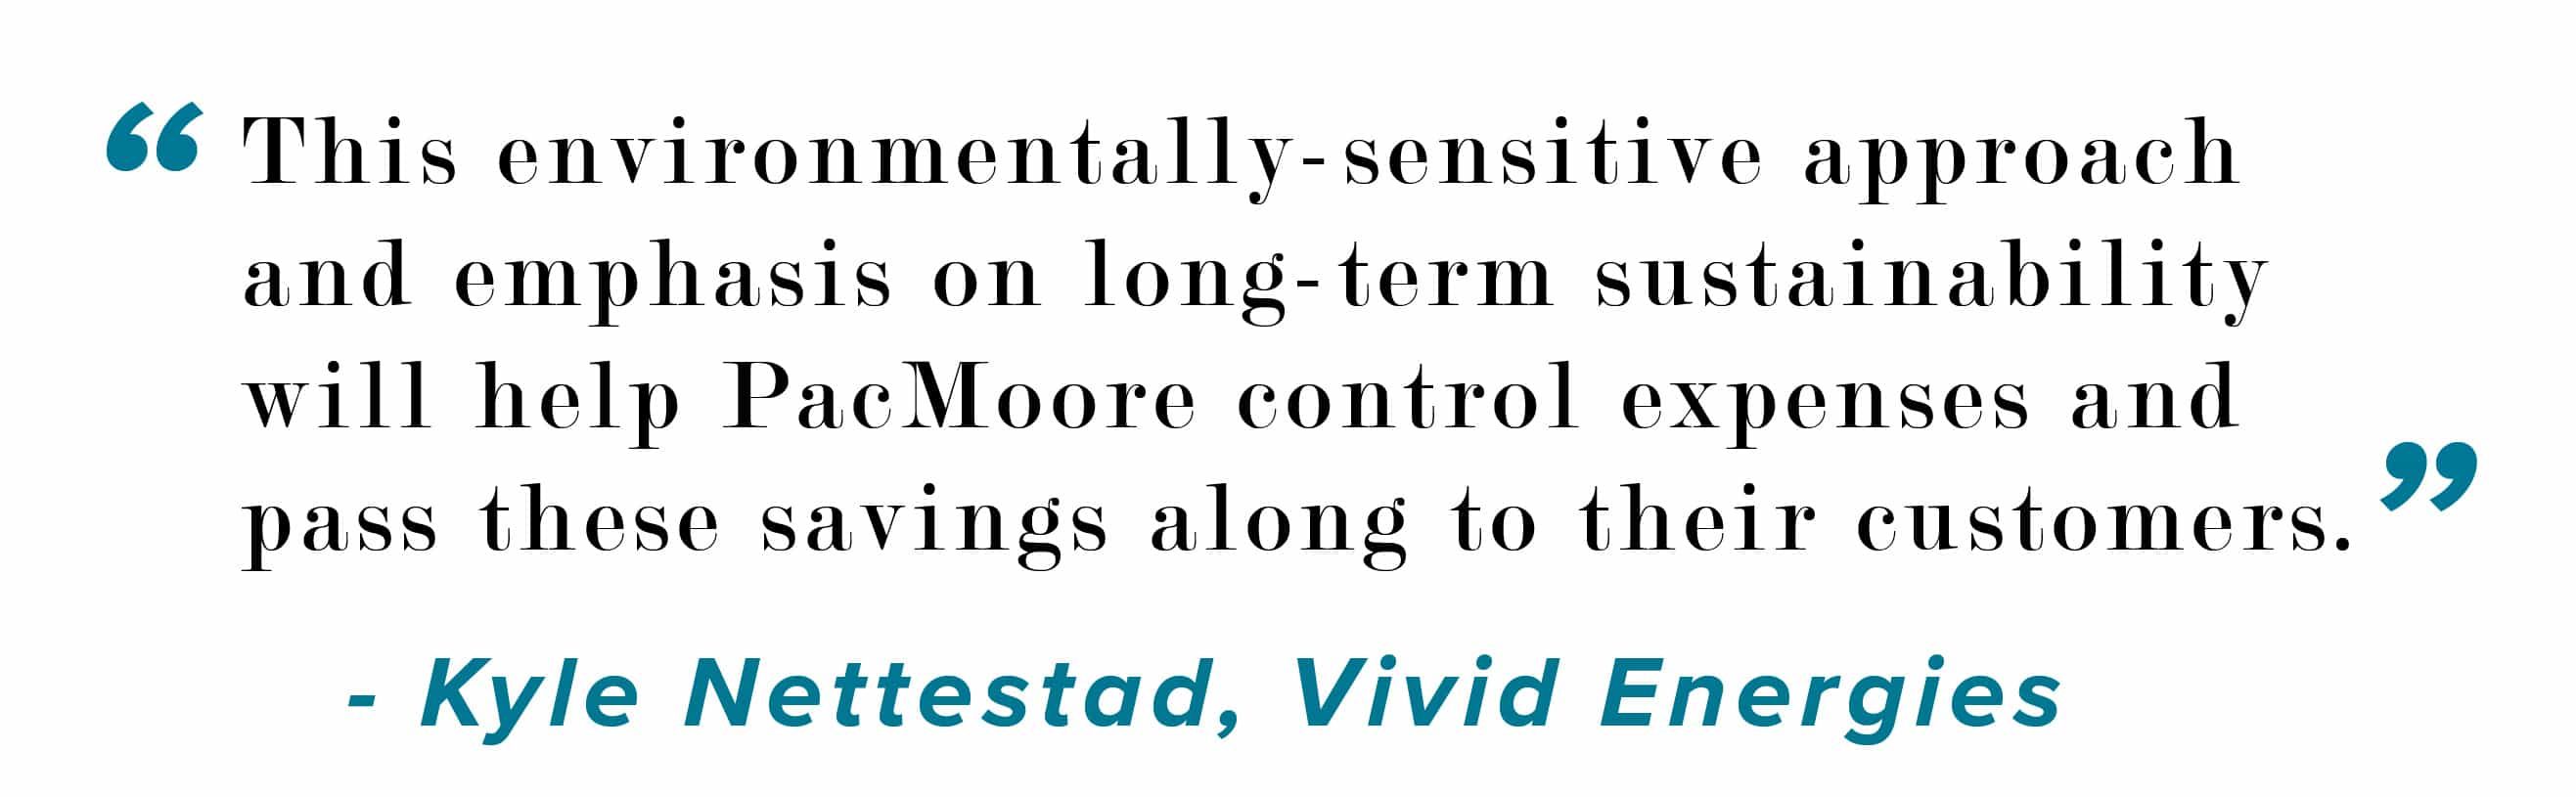 This environmentally -sensitive approach and emphasis on long-term sustainability will help PacMoore control expenses and pass these savings along to their customers. Kyle Nettestad, Vivid Energies